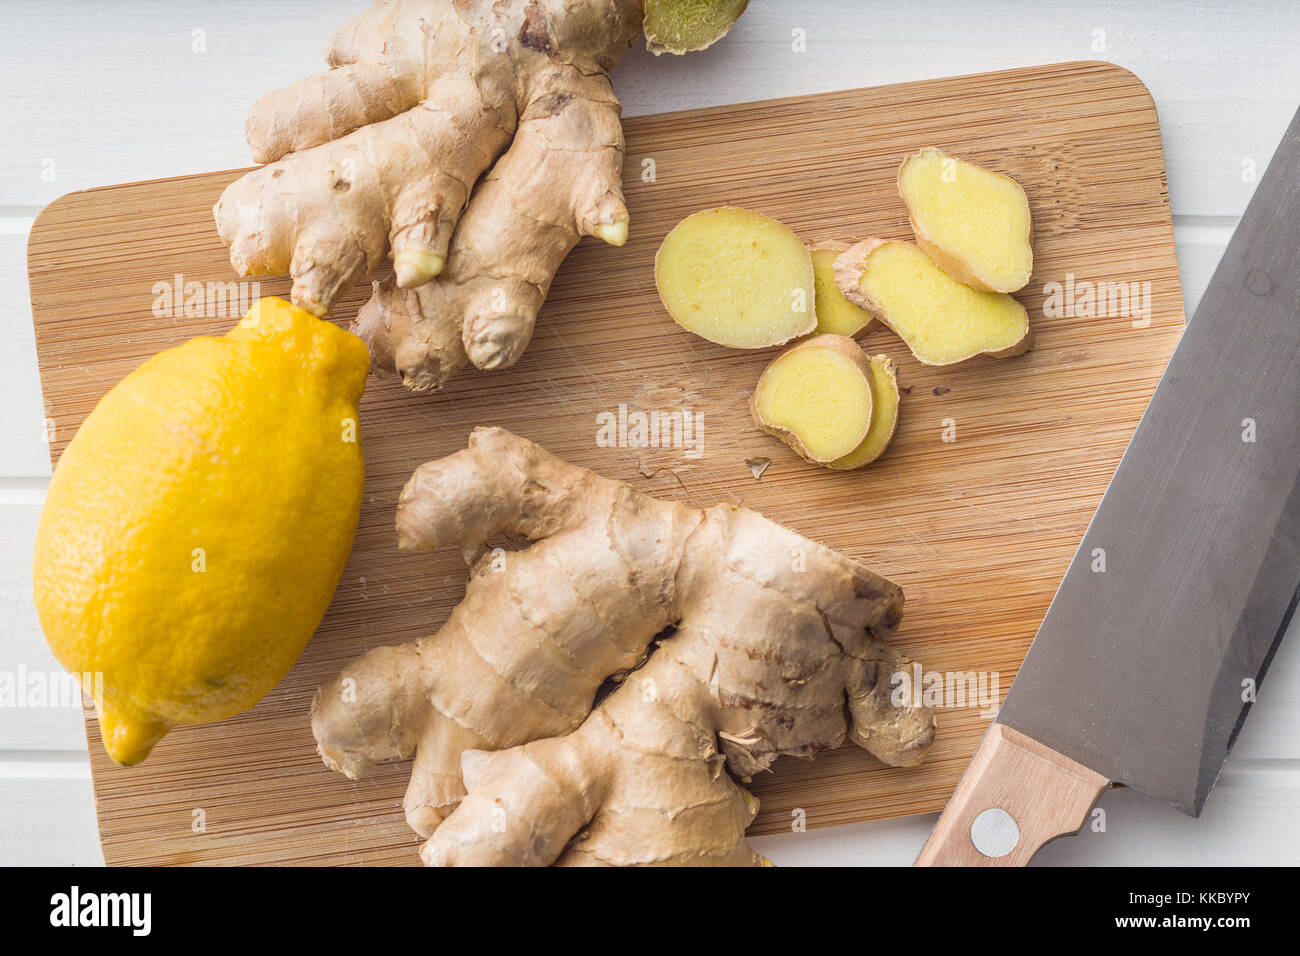 Sliced ginger root and yellow lemon. - Stock Image